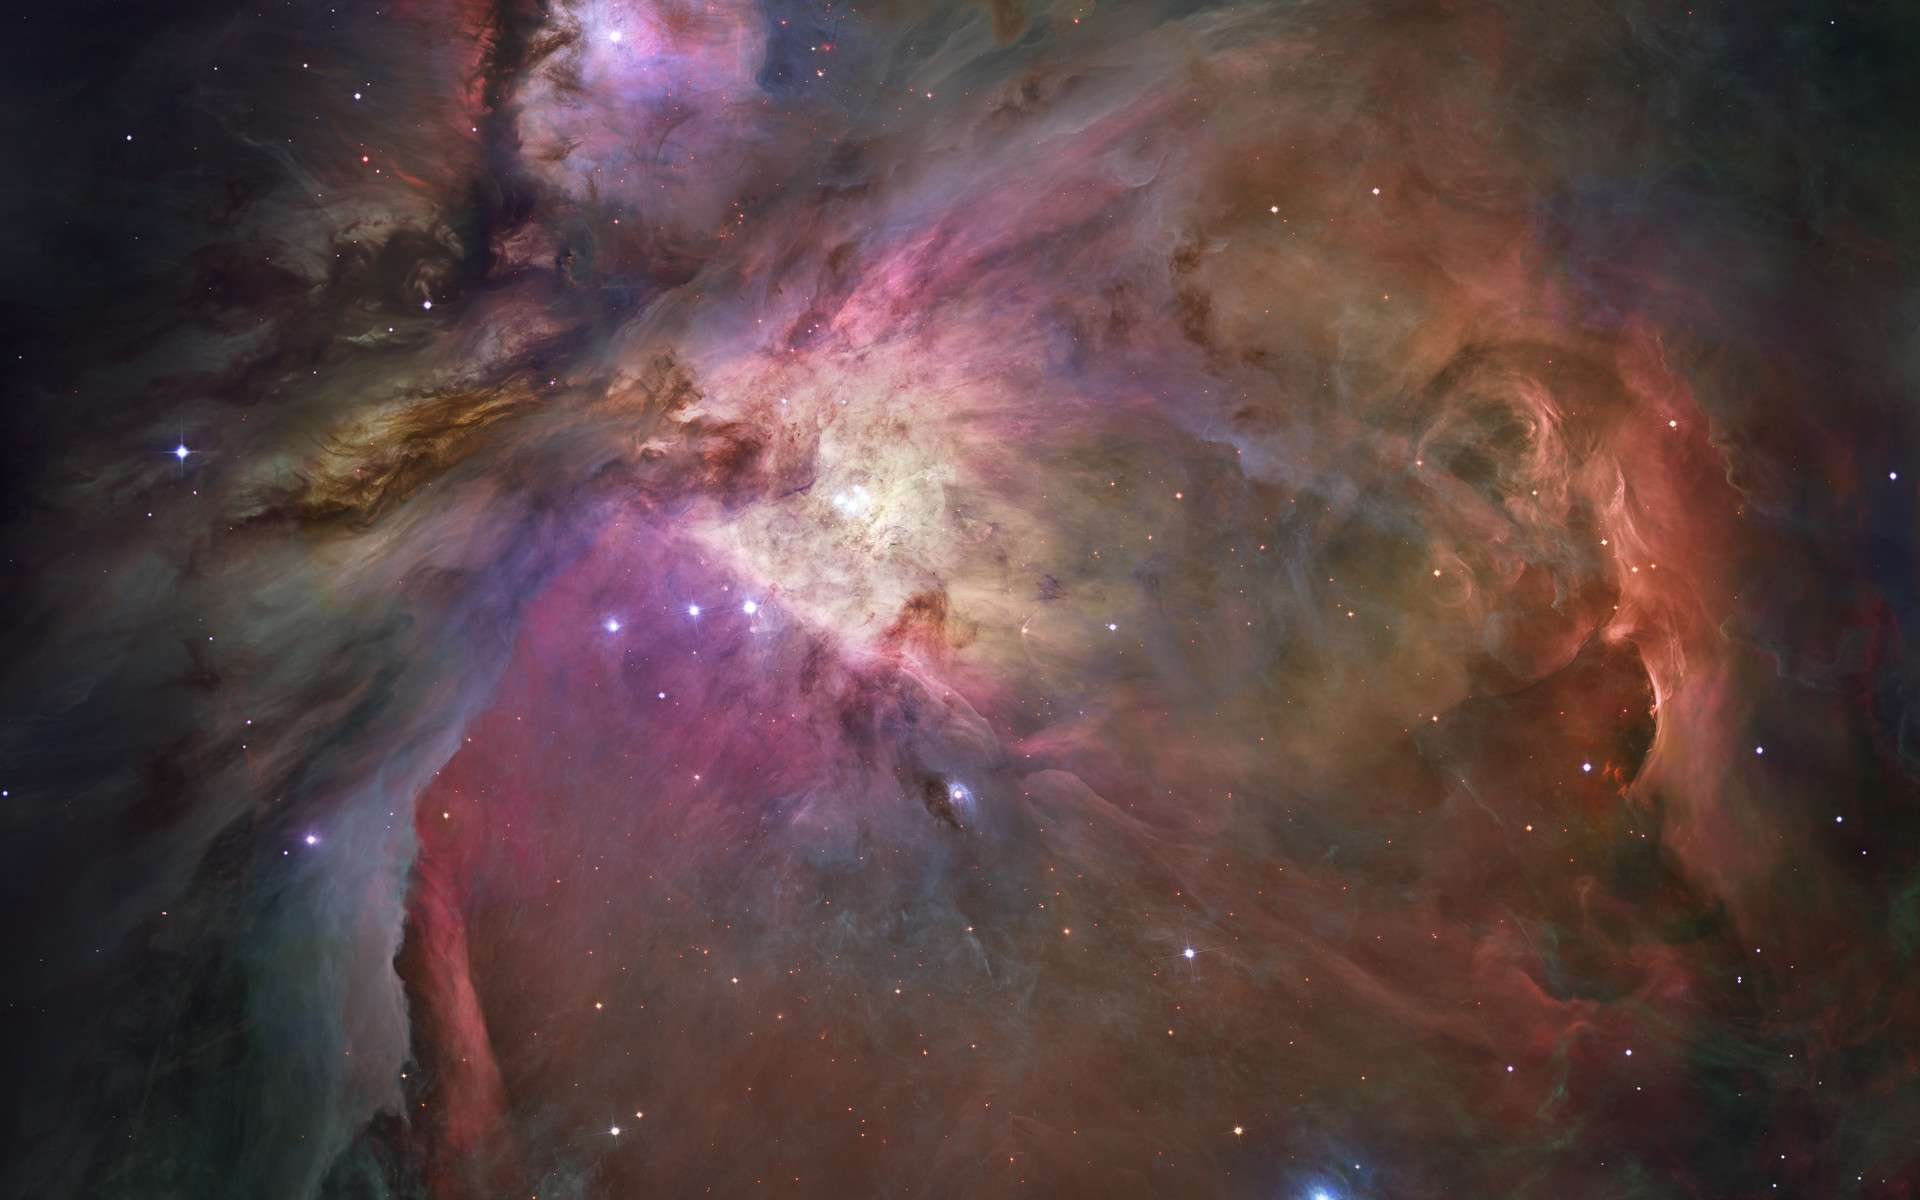 Image composite de la nébuleuse d'Orion vue par le télescope spatial Hubble. © Nasa, ESA, M. Robberto, the Hubble Space Telescope Orion Treasury Project Team